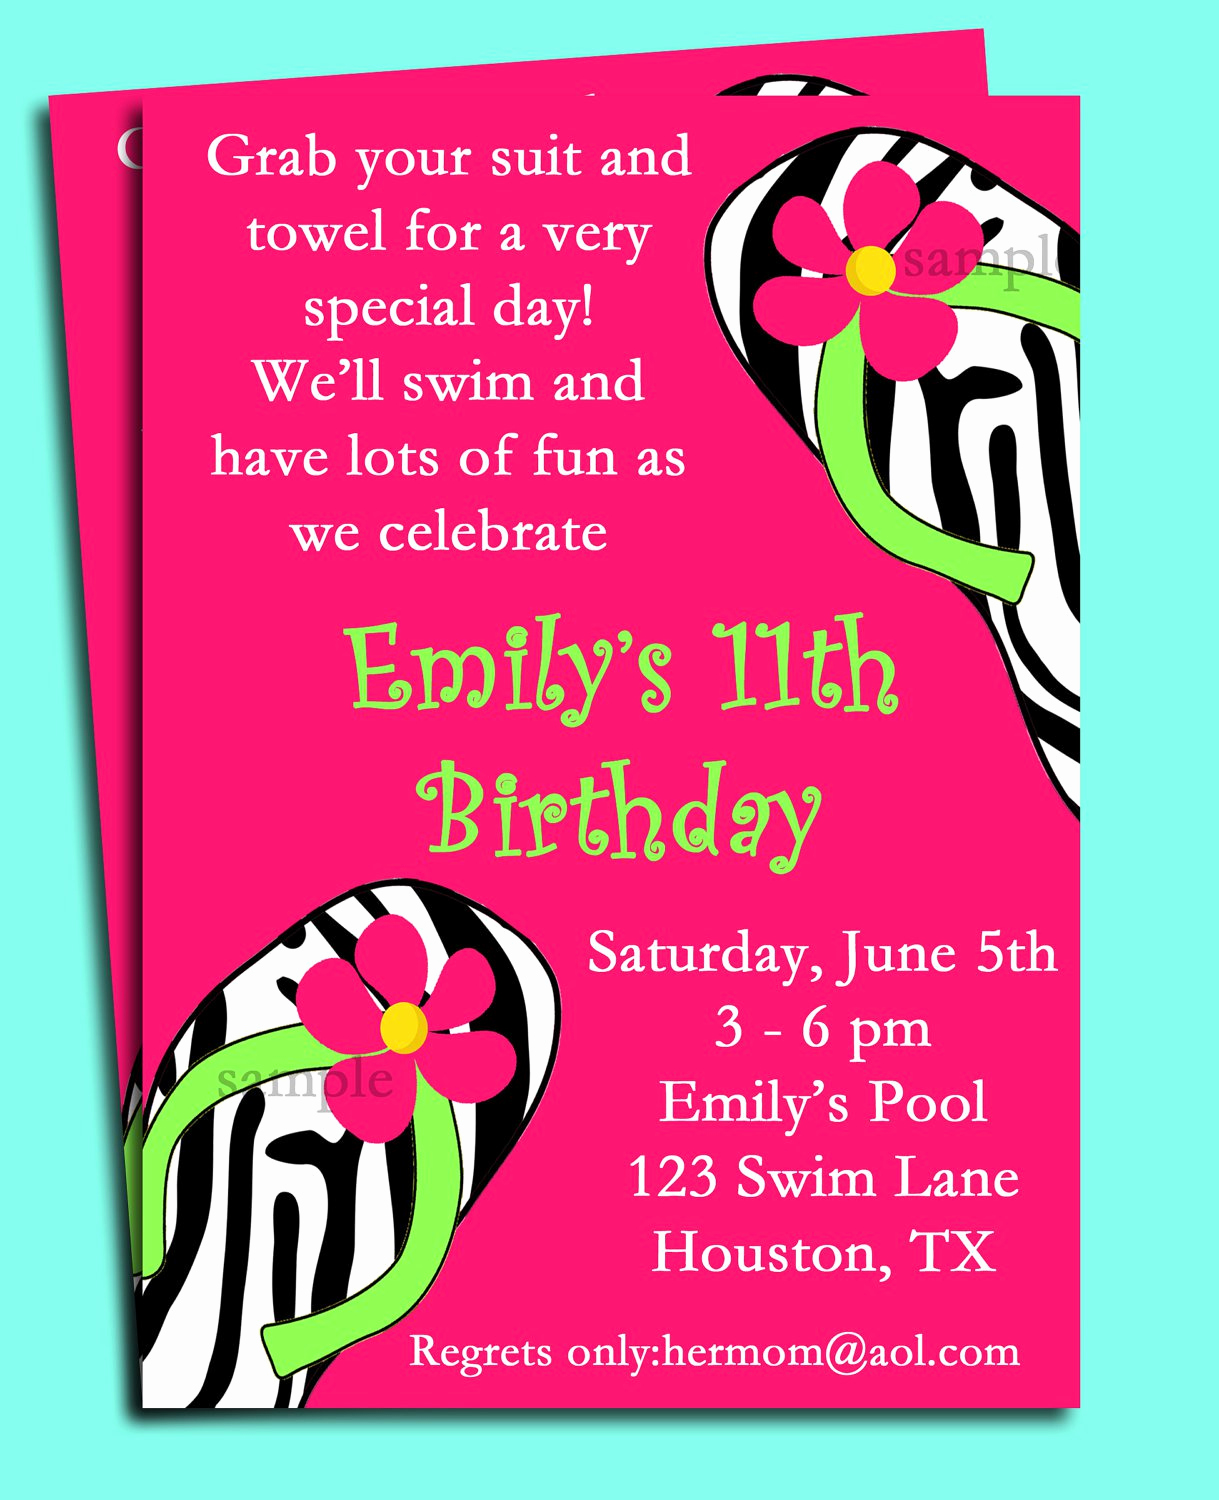 Birthday Pool Party Invitation Wording Beautiful Pool Party Birthday Invitation Wording